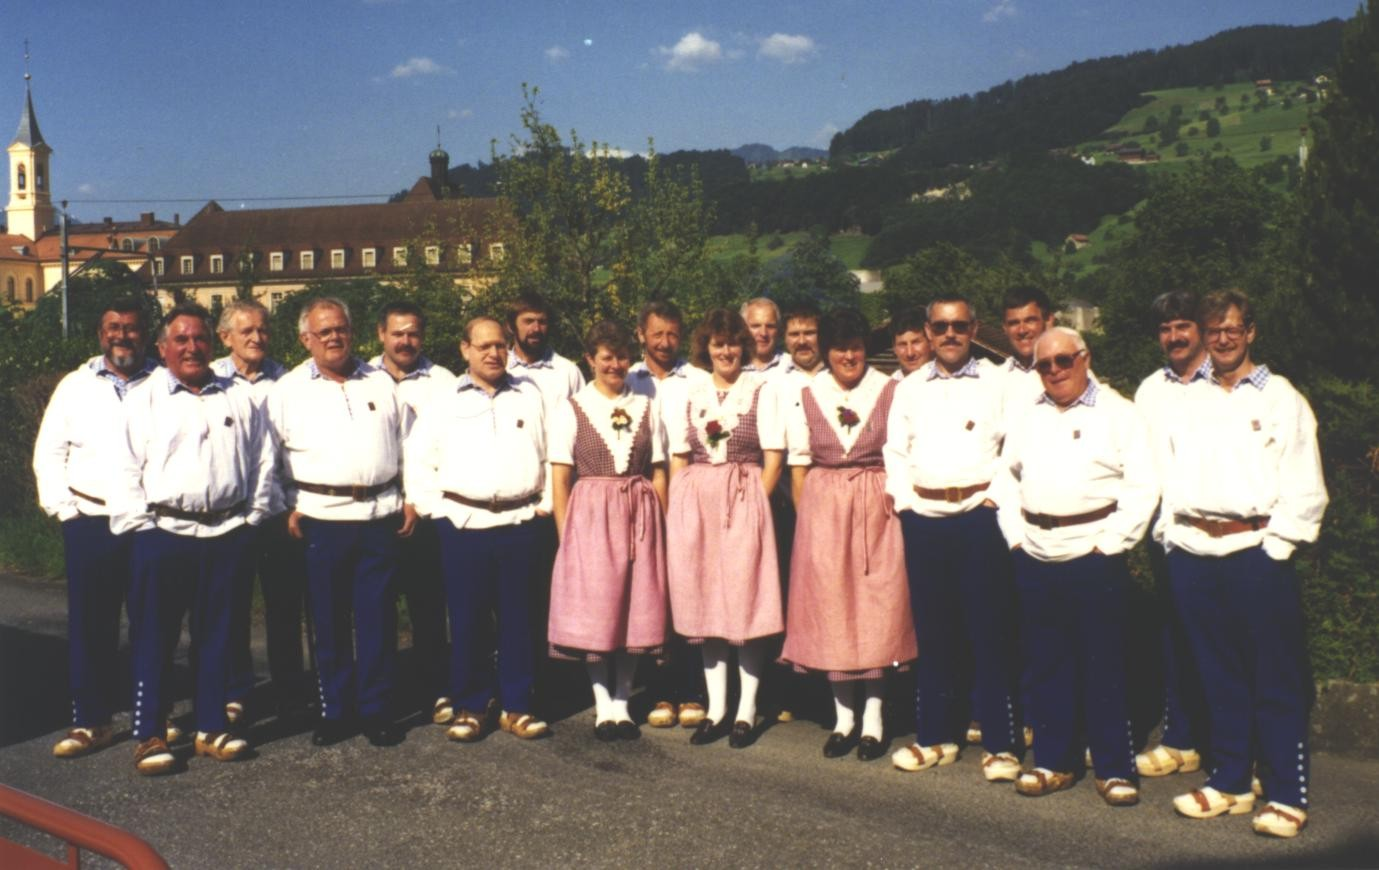 Am Jodlerfest 1993 in Sarnen